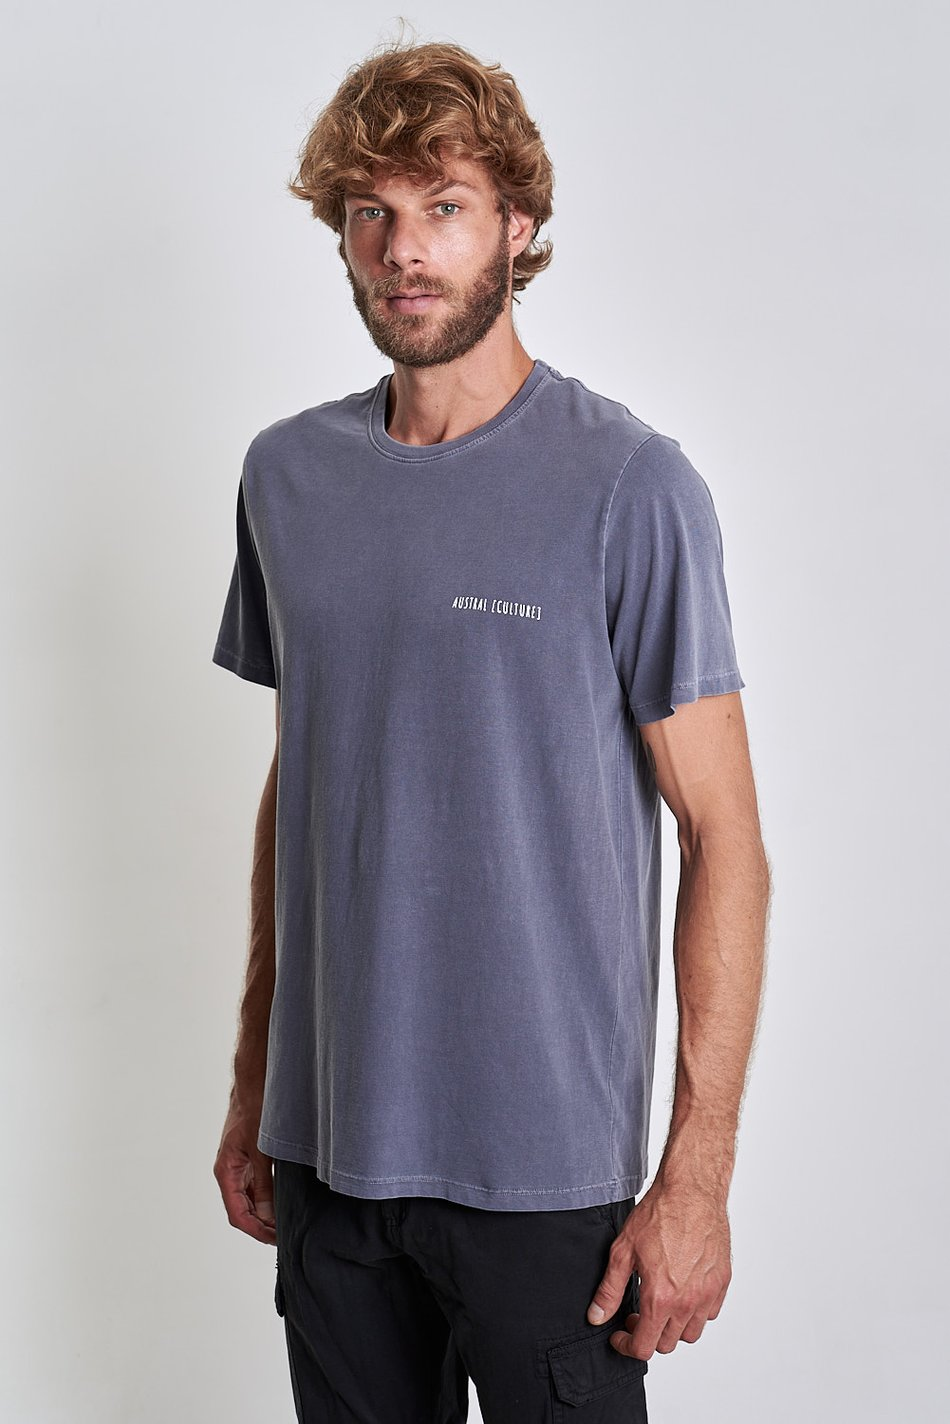 Camiseta Austral Beluga Royal